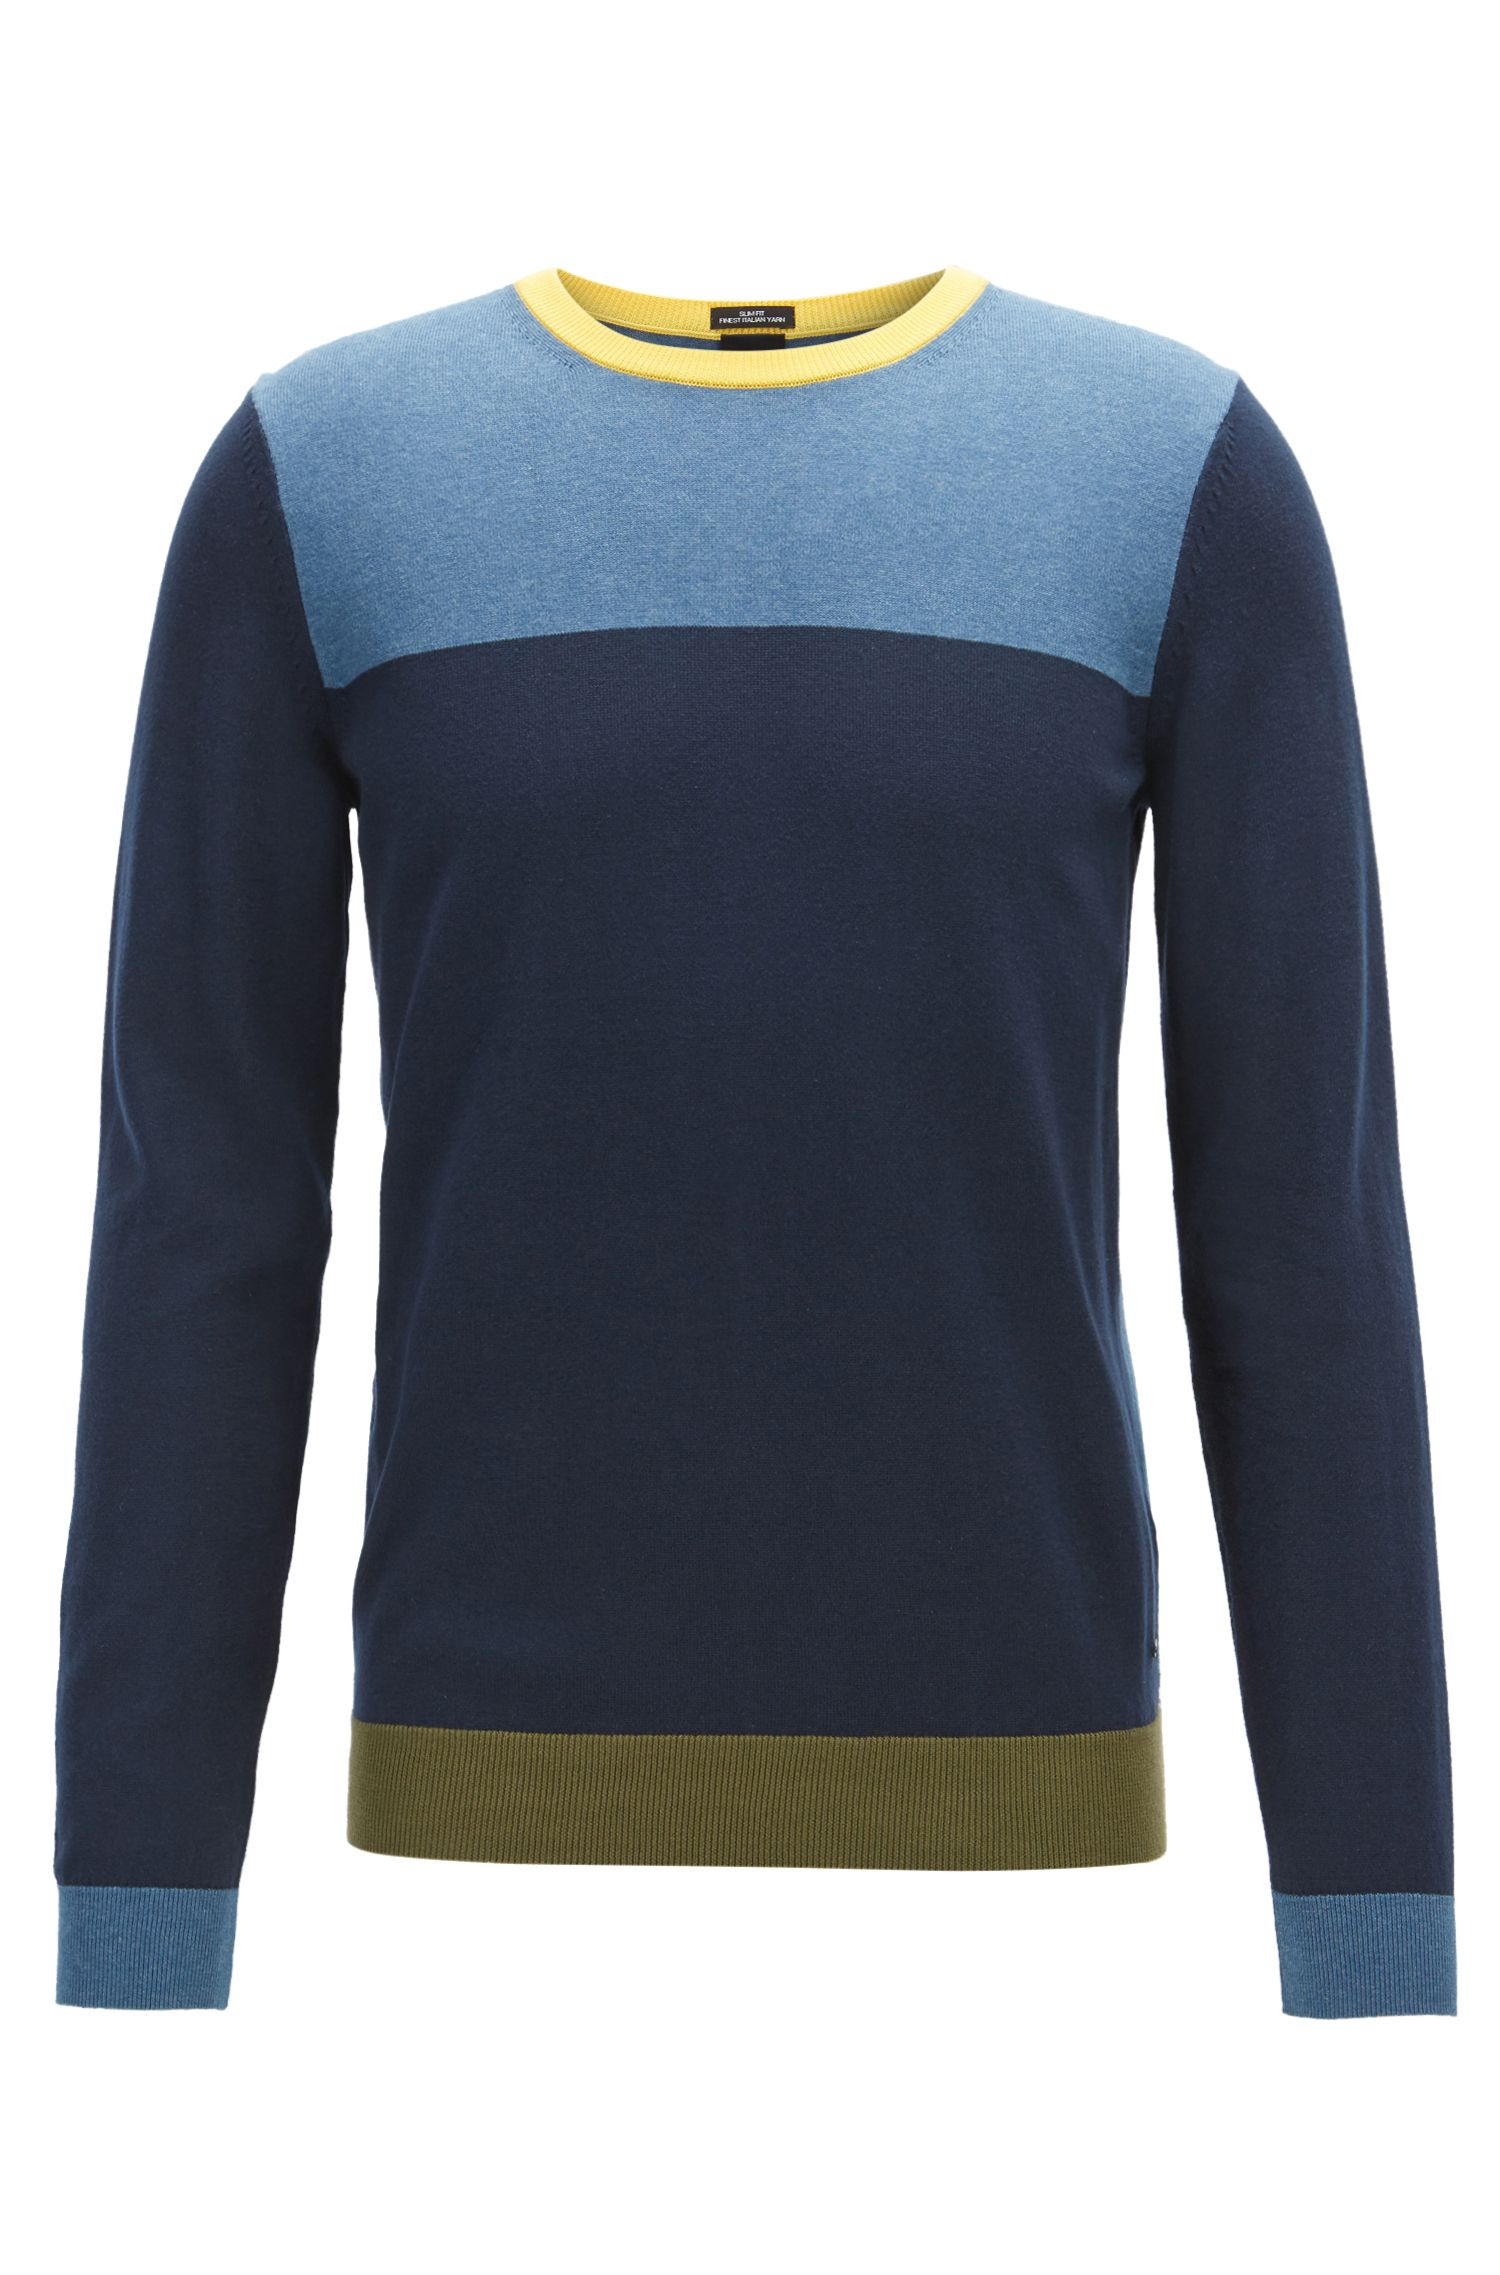 Long-sleeved colourblock sweater in Egyptian cotton